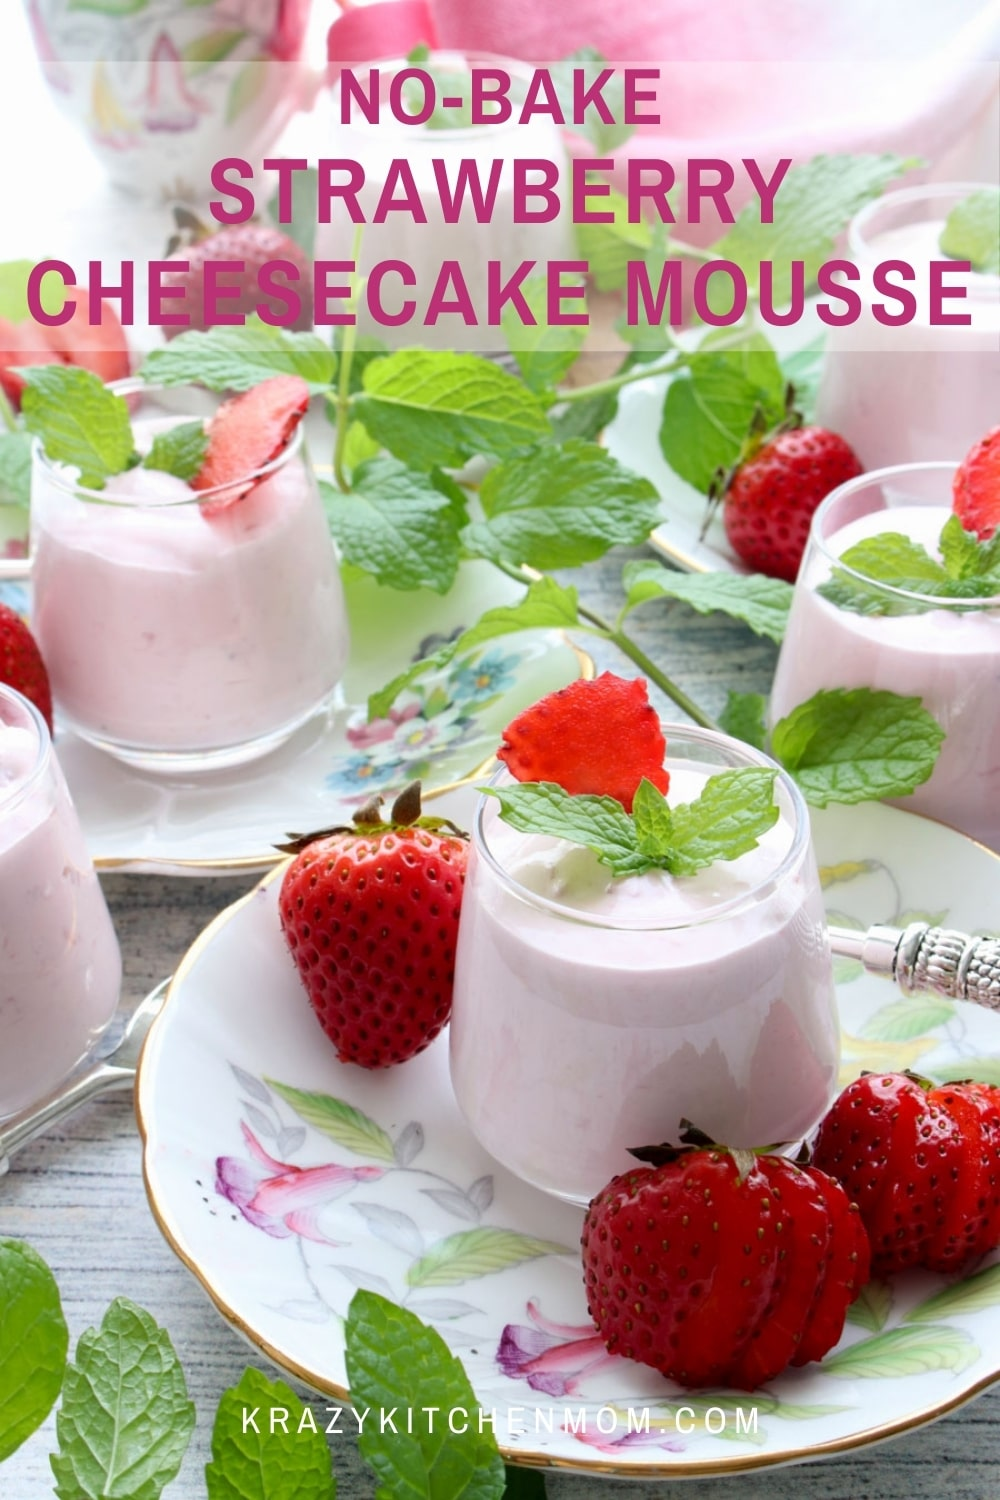 Smooth, creamy, silky strawberry cheesecake mousse with bits of fresh strawberries. It has all of the flavors of a baked cheesecake without the work.  via @krazykitchenmom